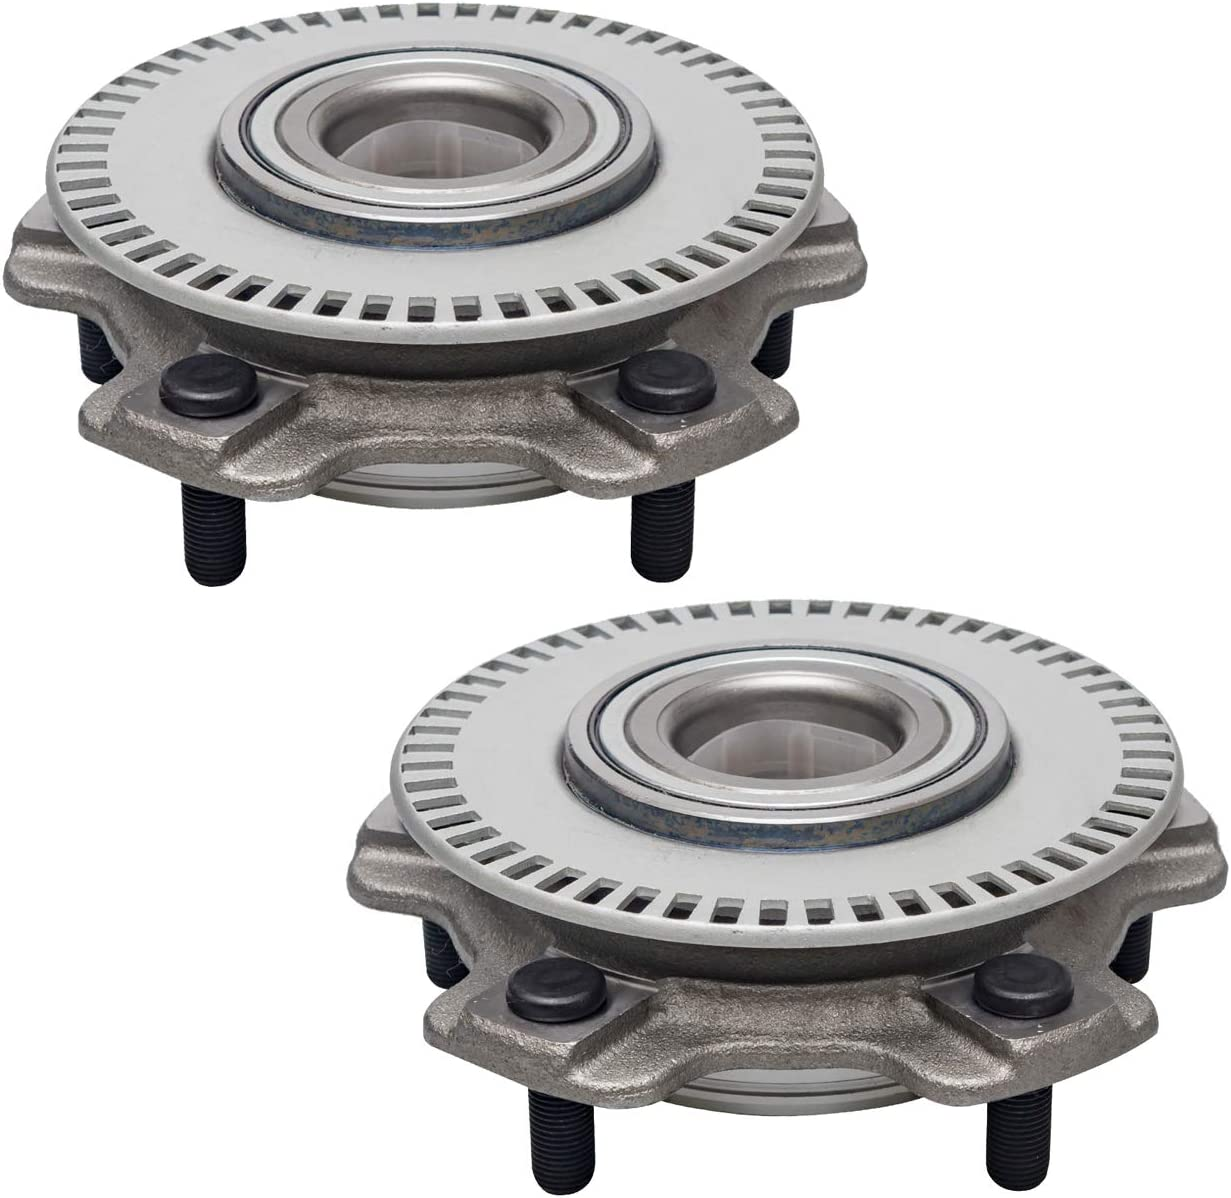 Front Wheel Bearing and Hub Assembly Compatible With 2001-2004 Chevrolet Tracker 01-05 Suzuki Grand Vitara 01-04 Vitara 02-06 XL-7 5 Stud Hub TUCAREST 513193 x2 Pair